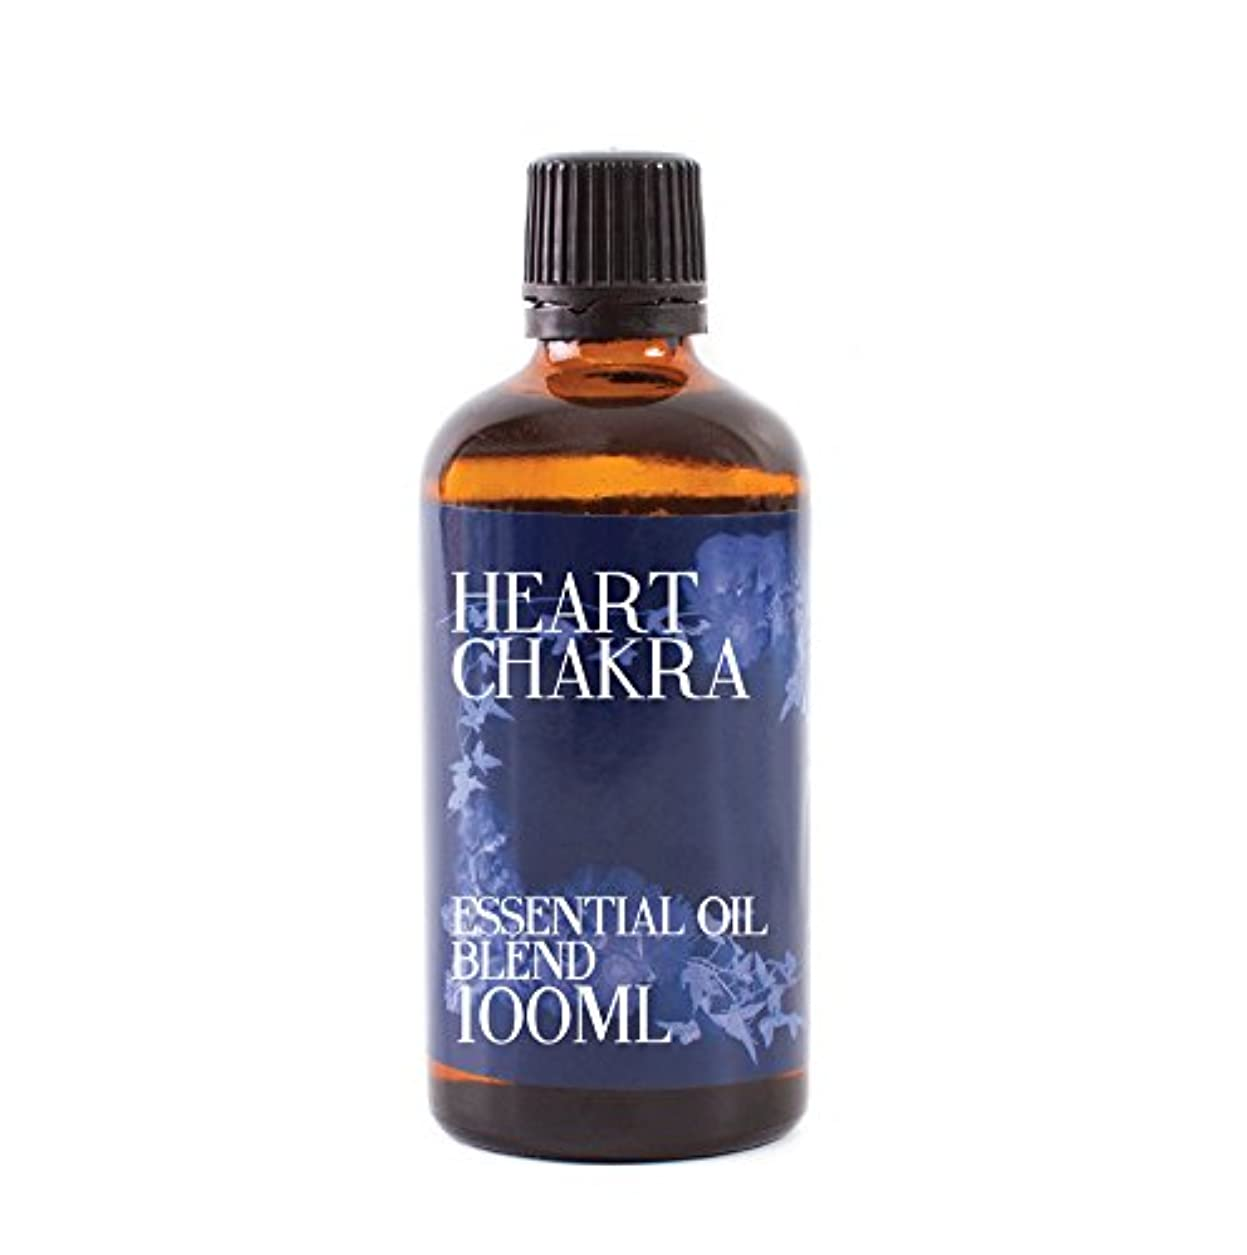 研磨安定しました科学的Mystic Moments | Heart Chakra | Essential Oil Blend - 100ml